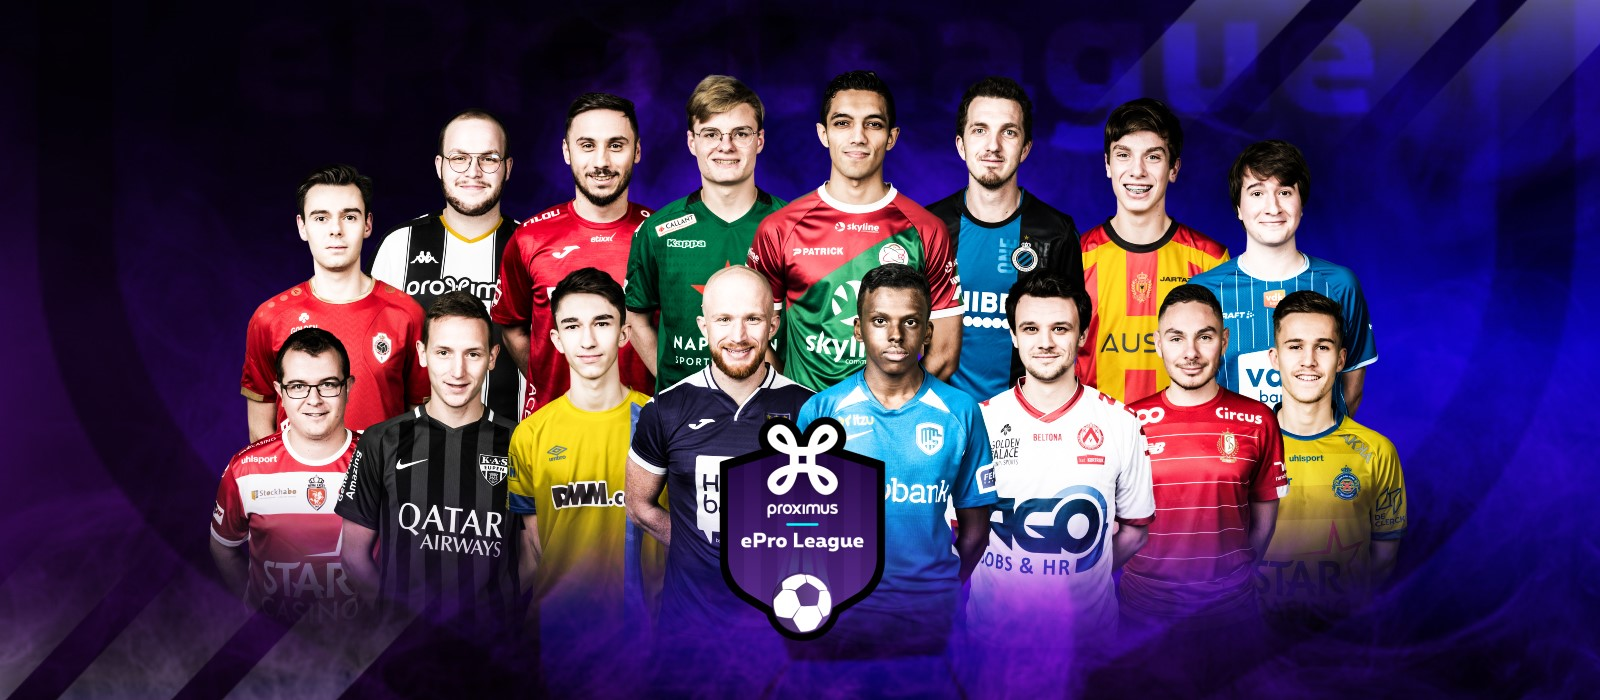 Proximus ePro League